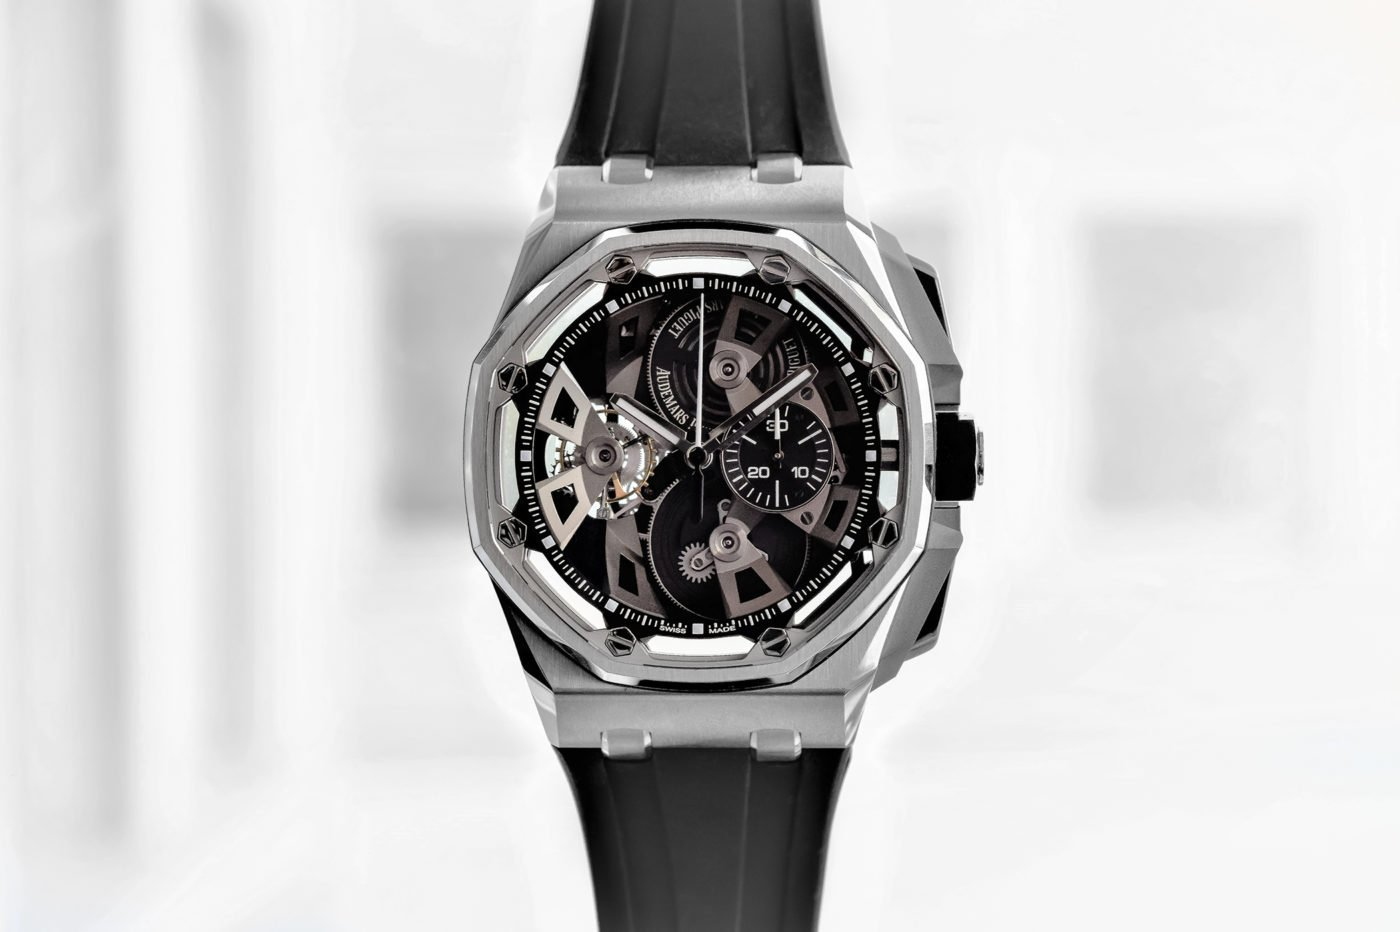 Audemars Piguet Royal Oak Offshore Tourbillon Chronograph – SIHH 2018 [zdjęcia live, cena]